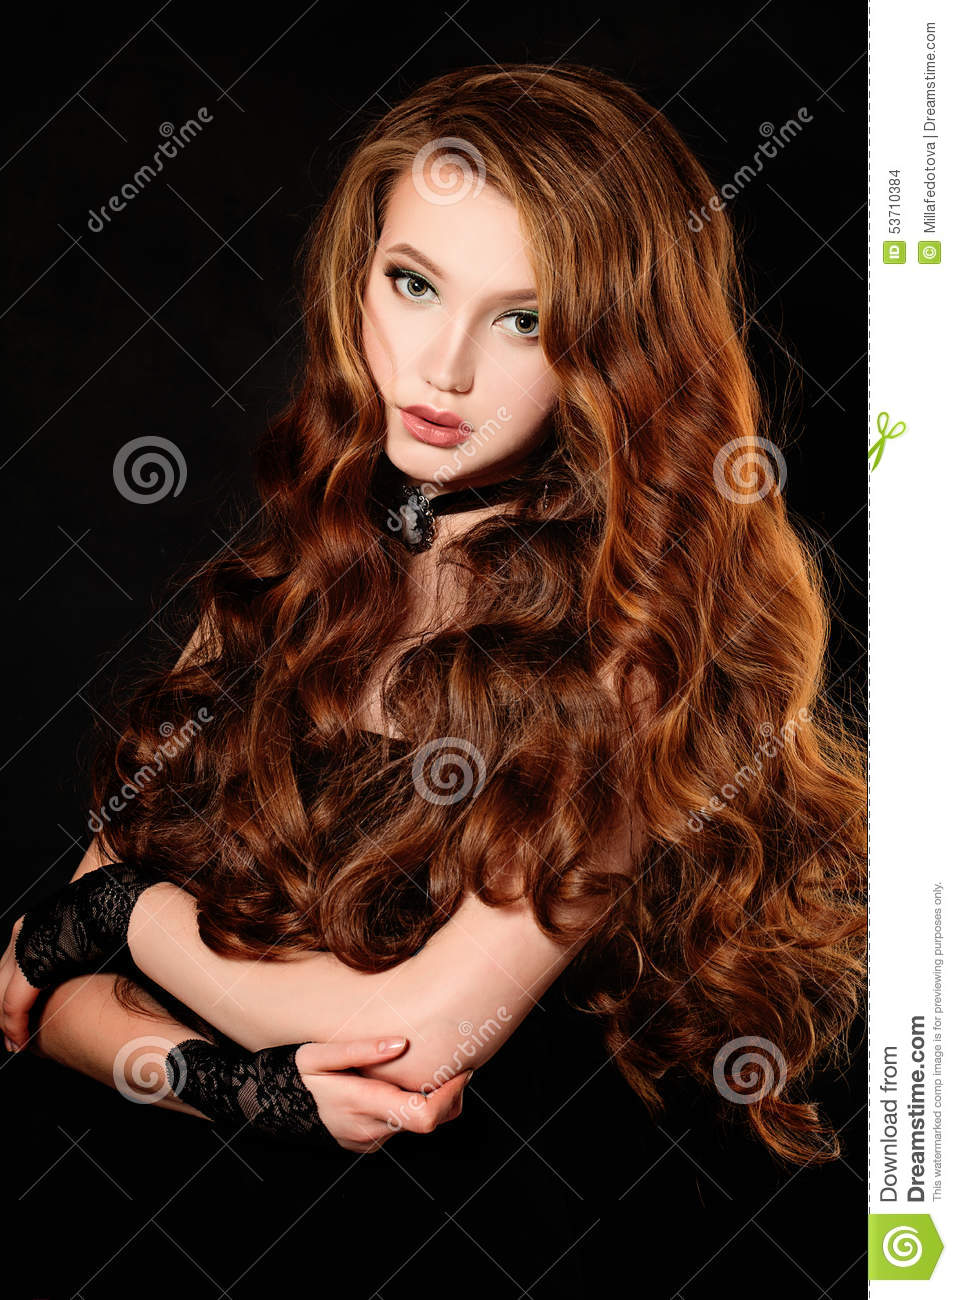 Woman With Long Curly Red Hair Stock Photo Image Of Brown Color